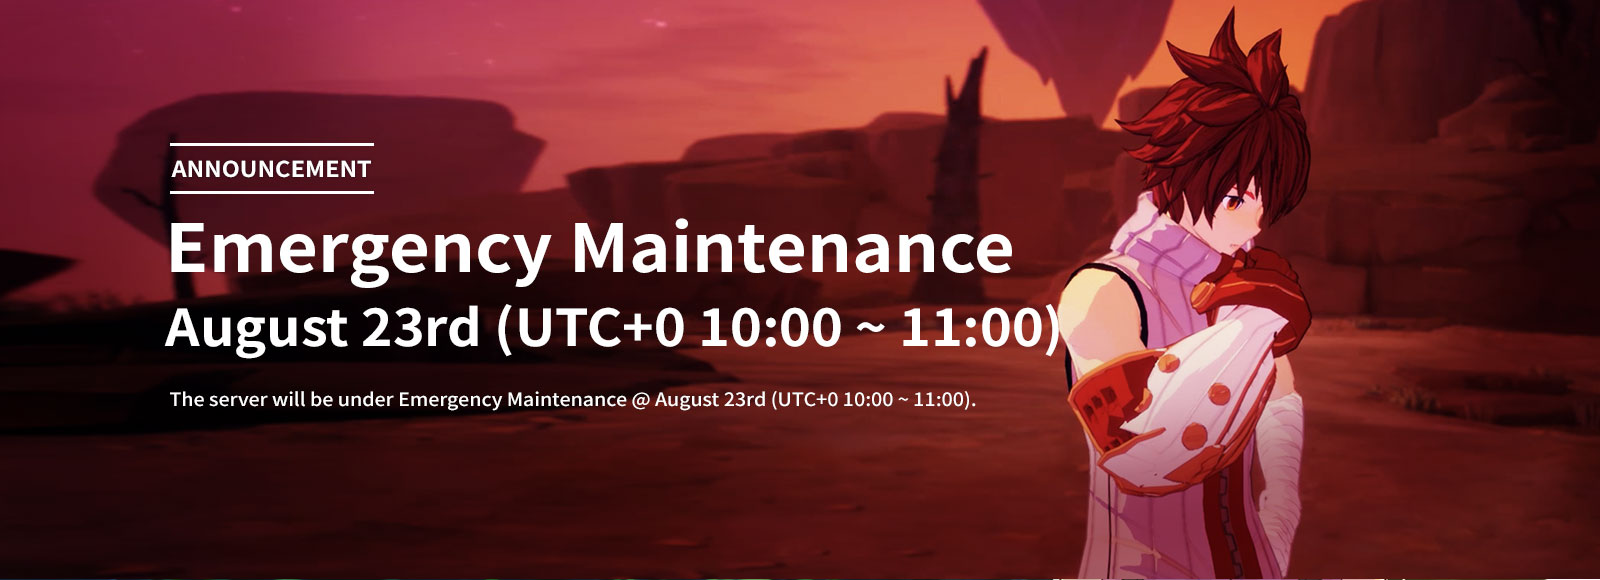 August 23rd Emergency Maintenance Announcement